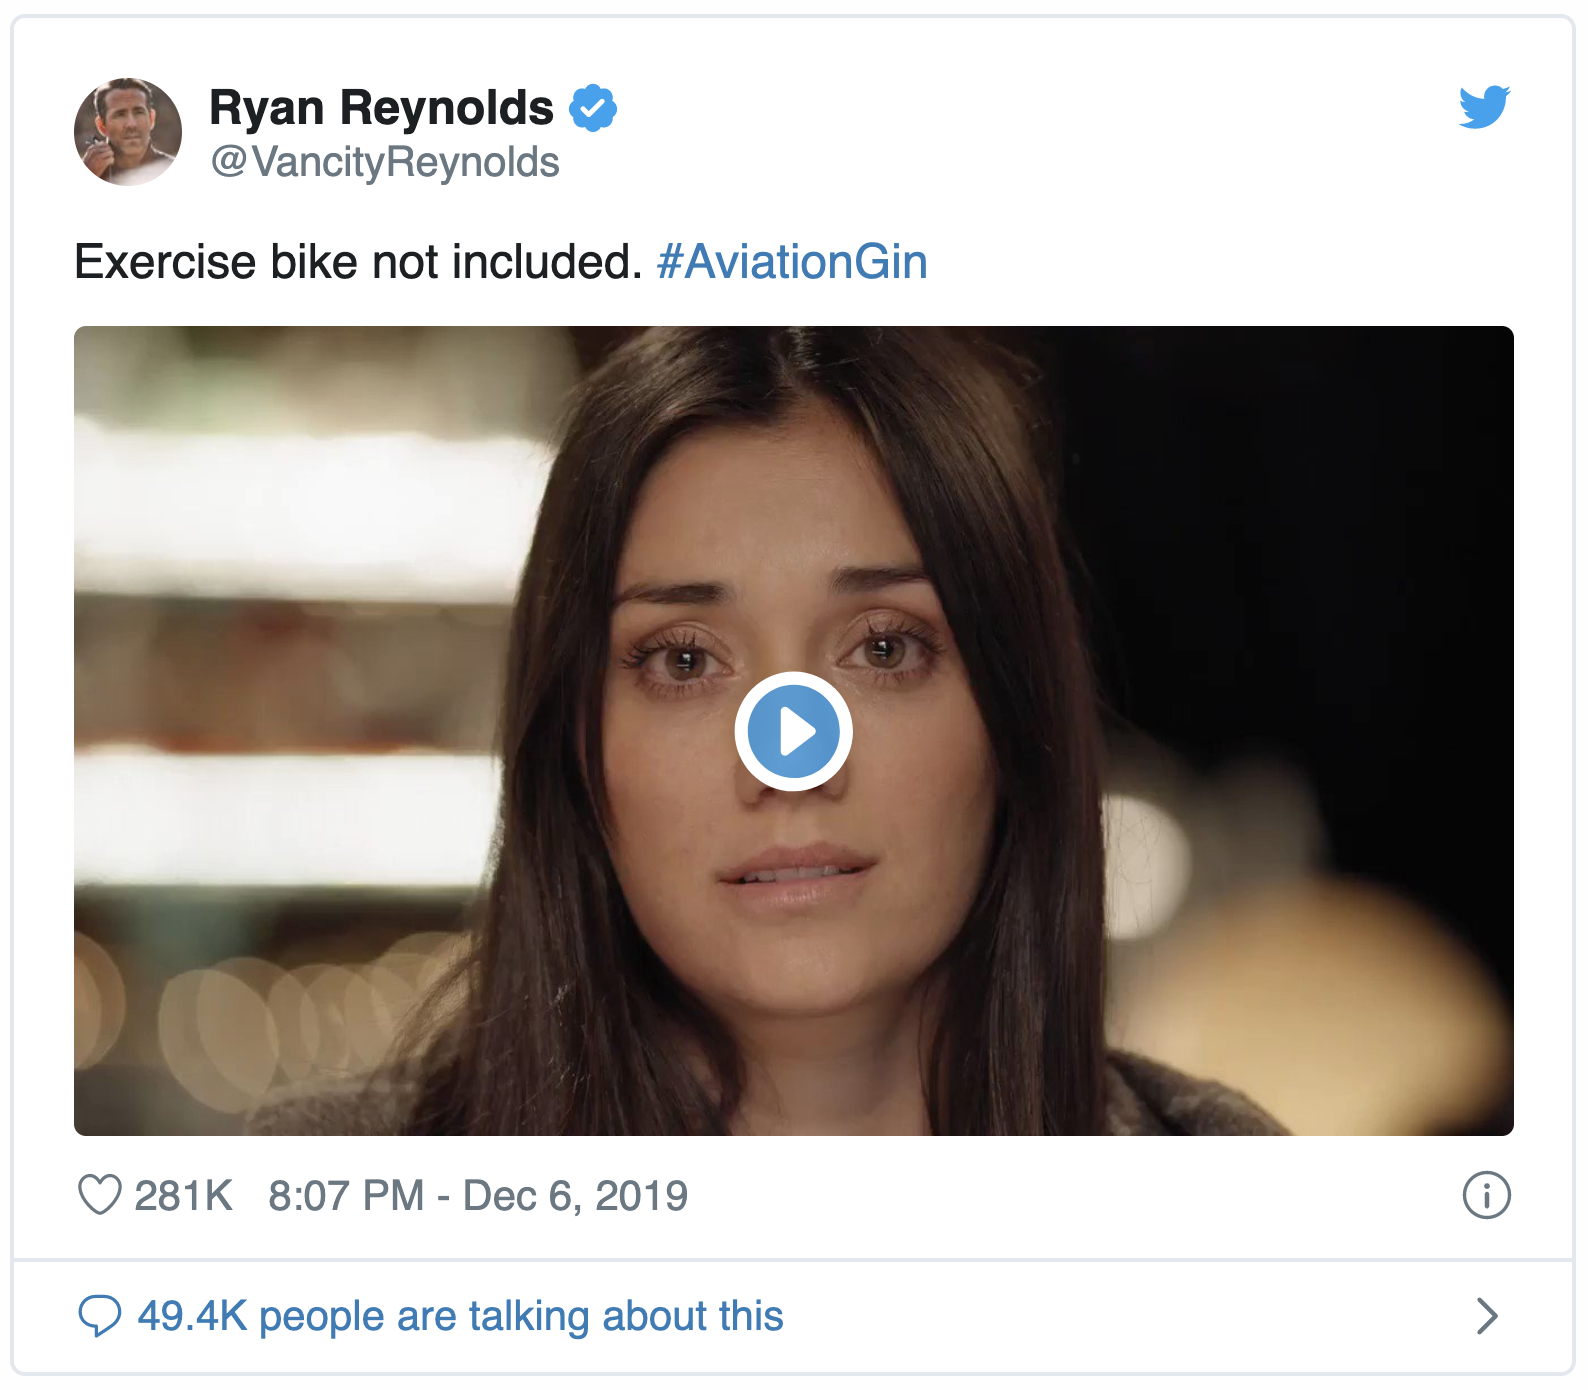 Ryan Reynolds Aviation Gin Peloton Twitter Post